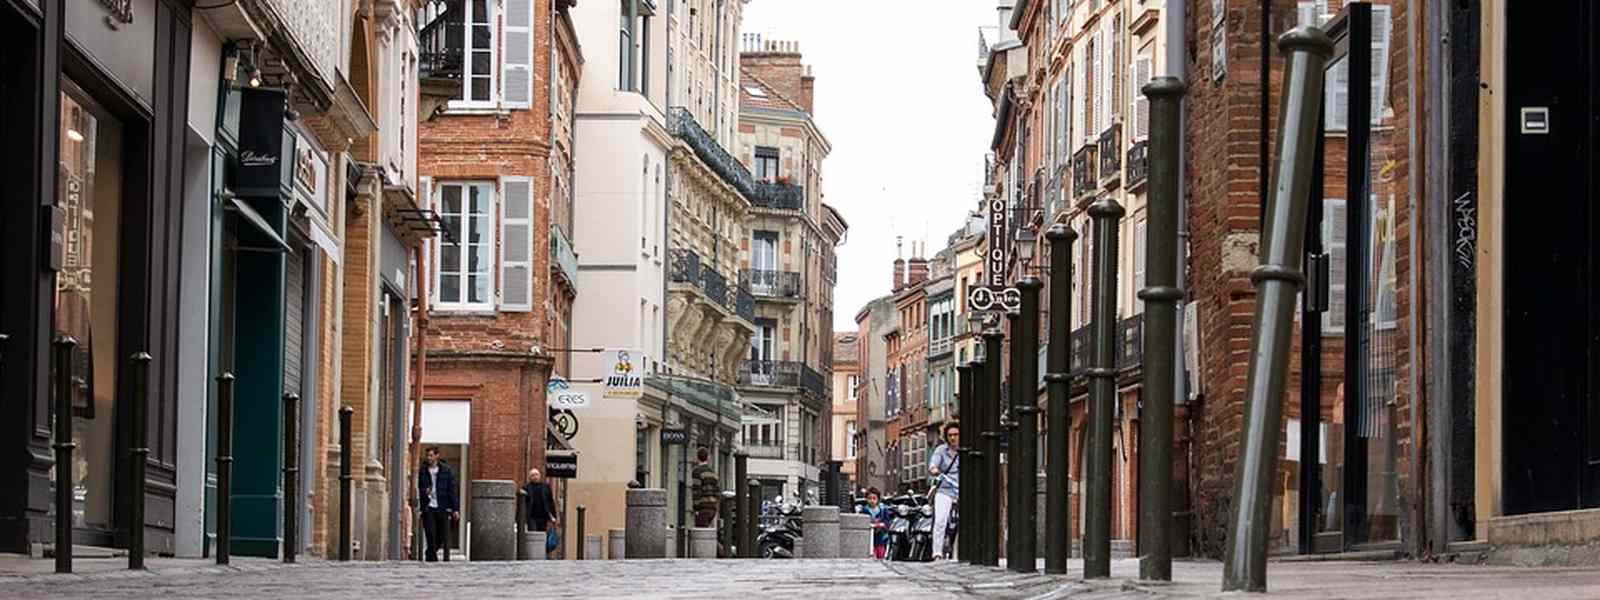 quartier arenes romaines toulouse